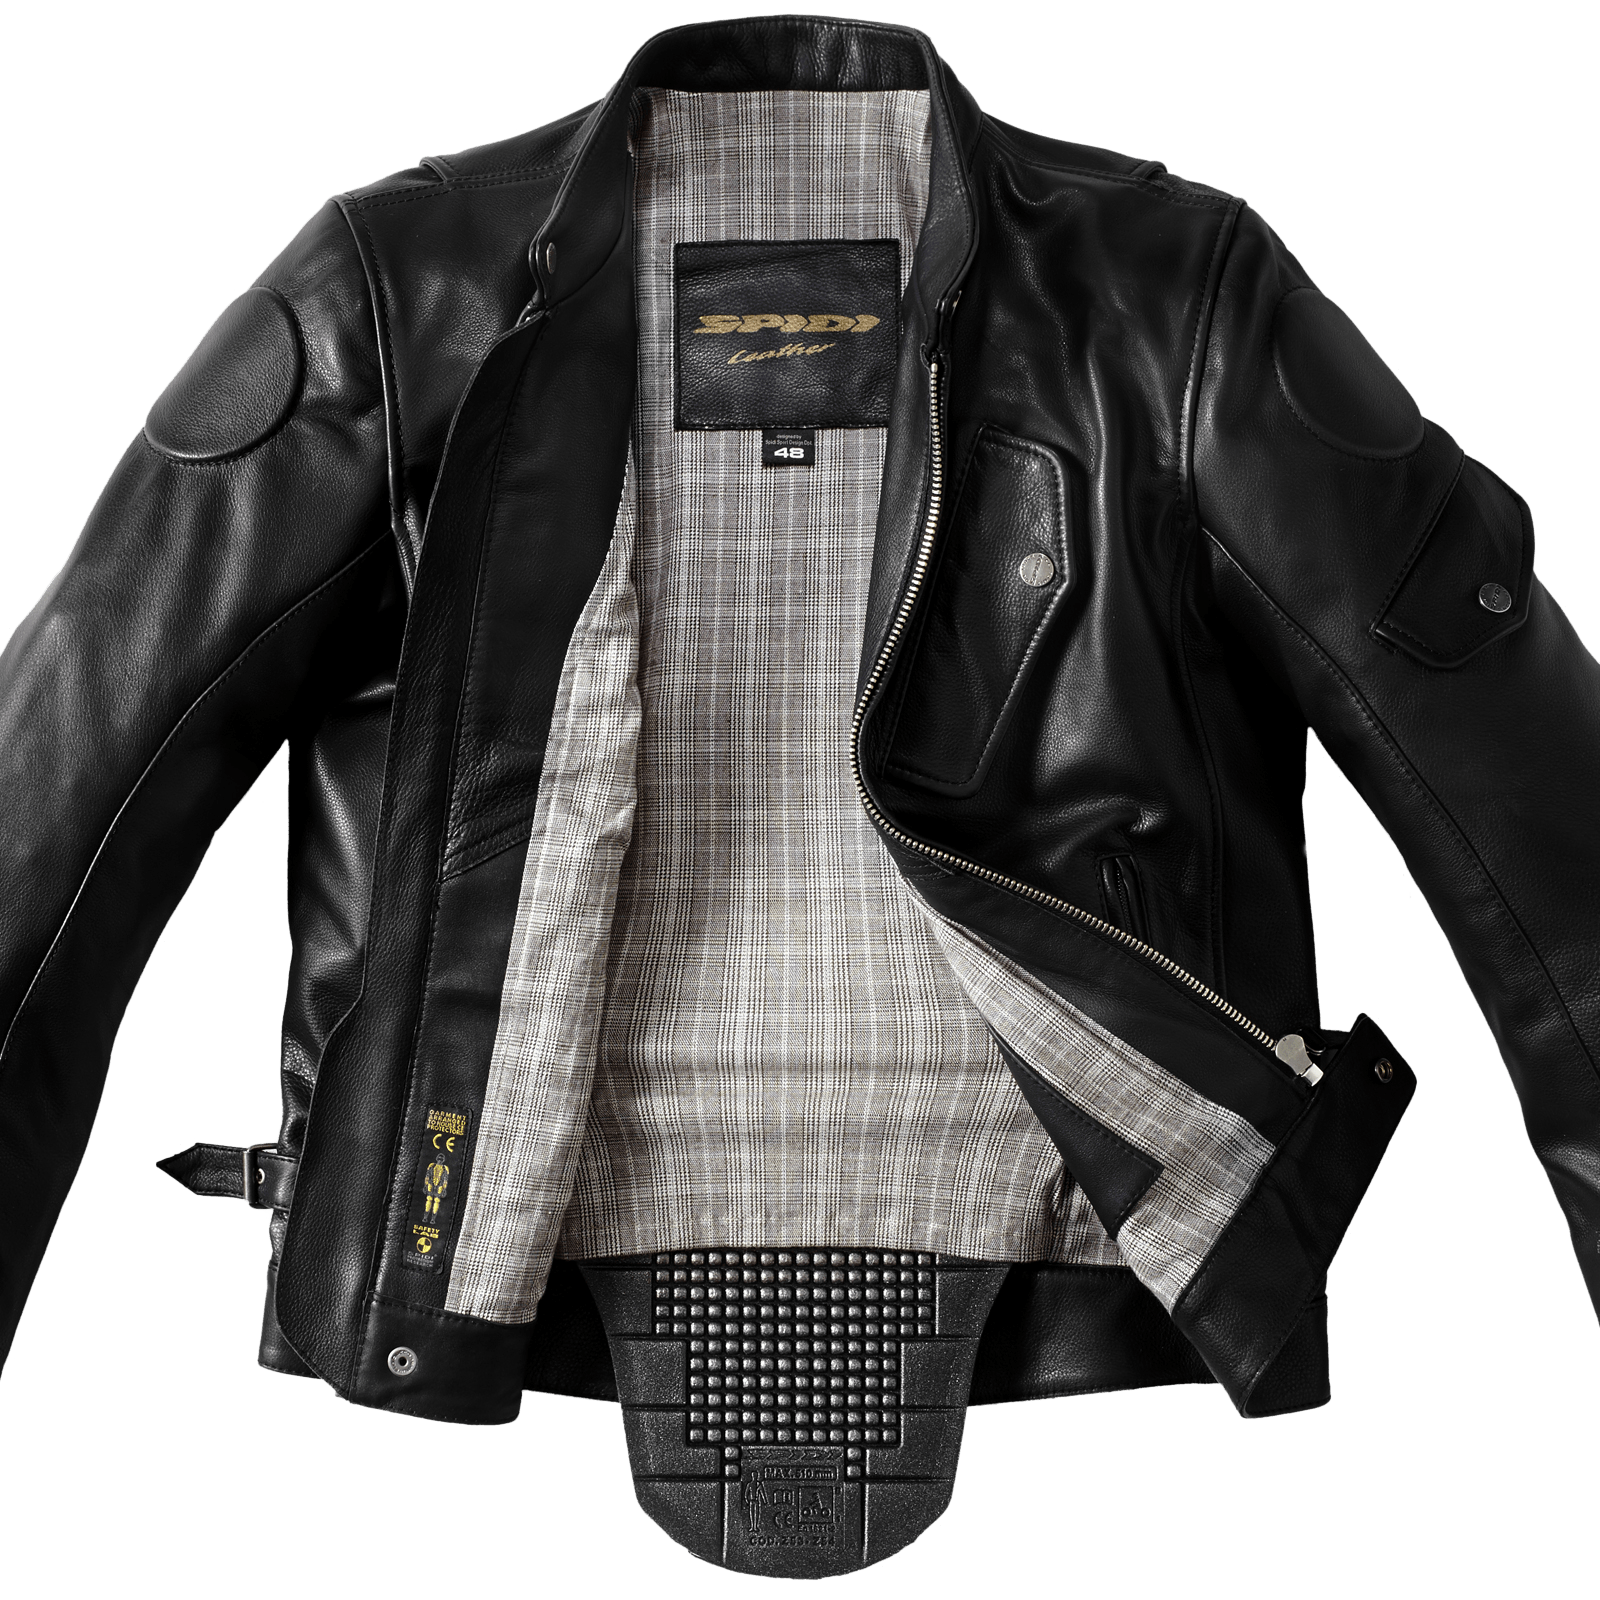 Leather jacket png - Prevnext